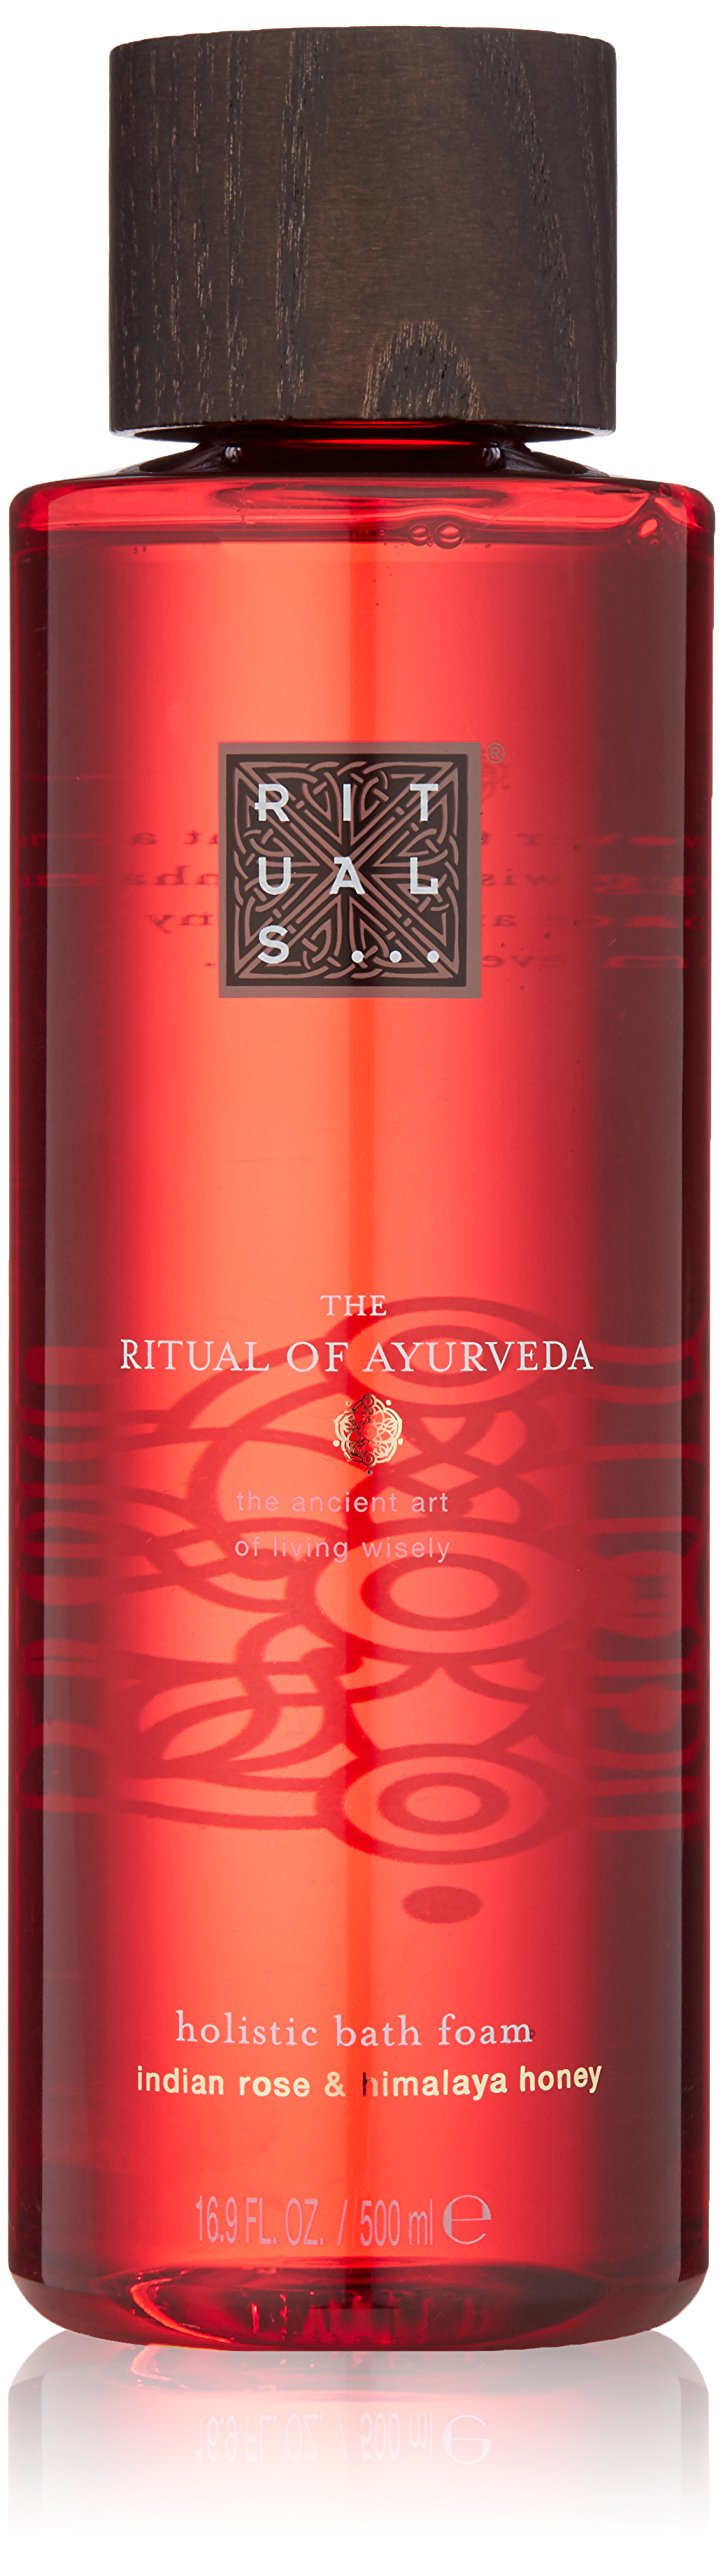 RITUALS The RITUALS of Ayurveda Bath Foam, 500 ml